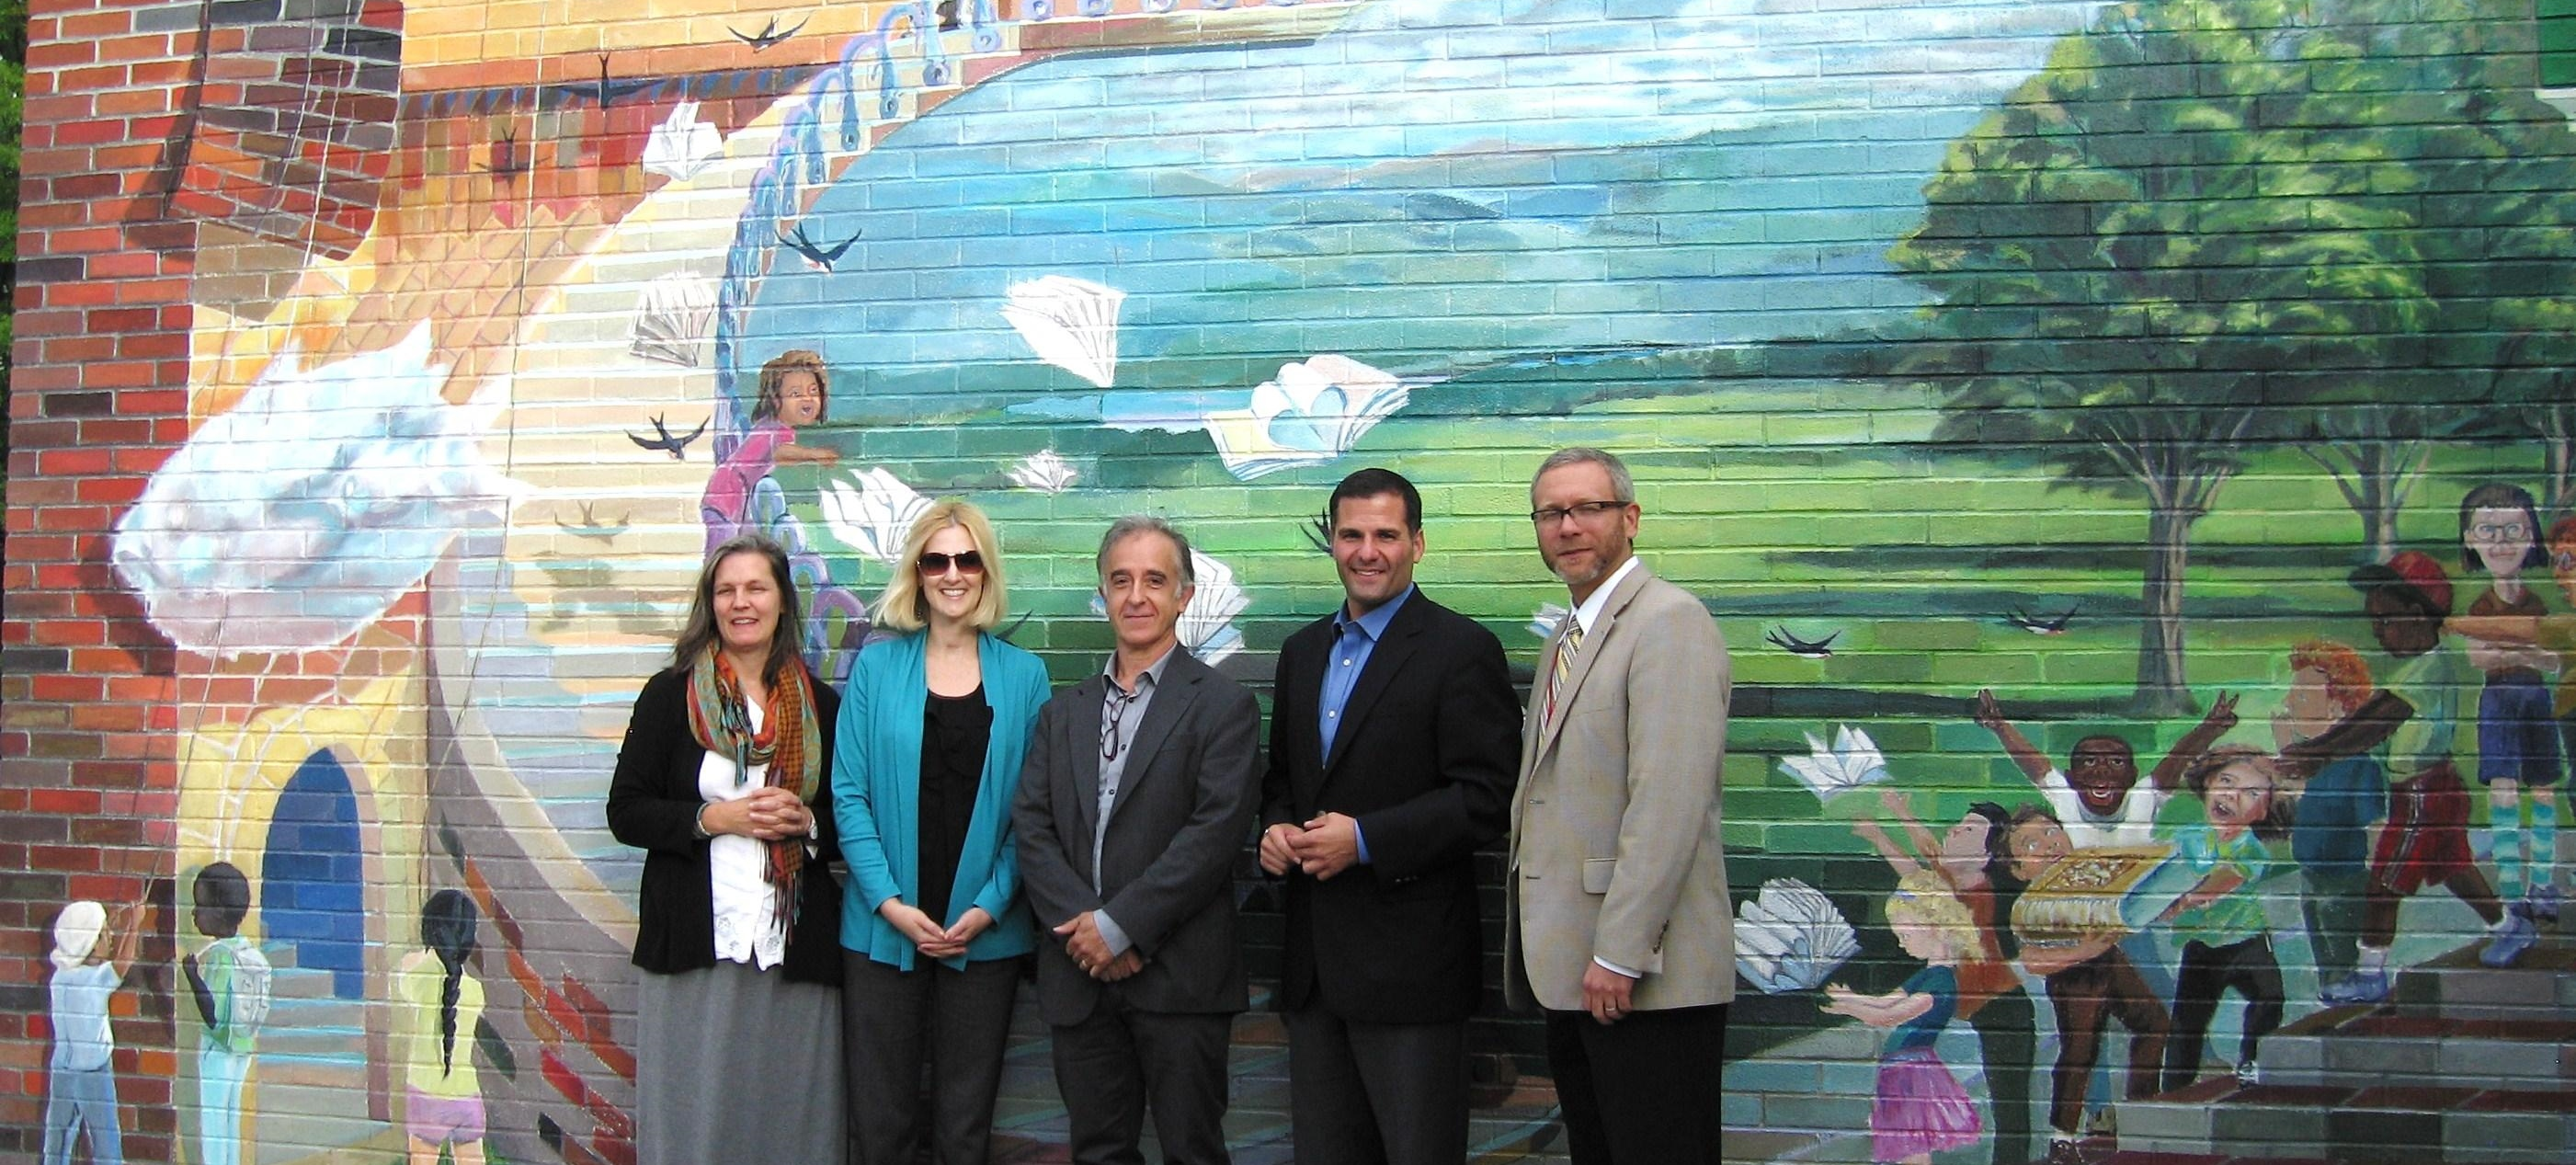 (L to R): Marguerite San Millan, Mill Road Elementary School Principal Erin Hayes, Andres San Millan, County Executive Marc Molinaro, Red Hook Superintendent Paul Finch.  Arlene Wege/The Observer